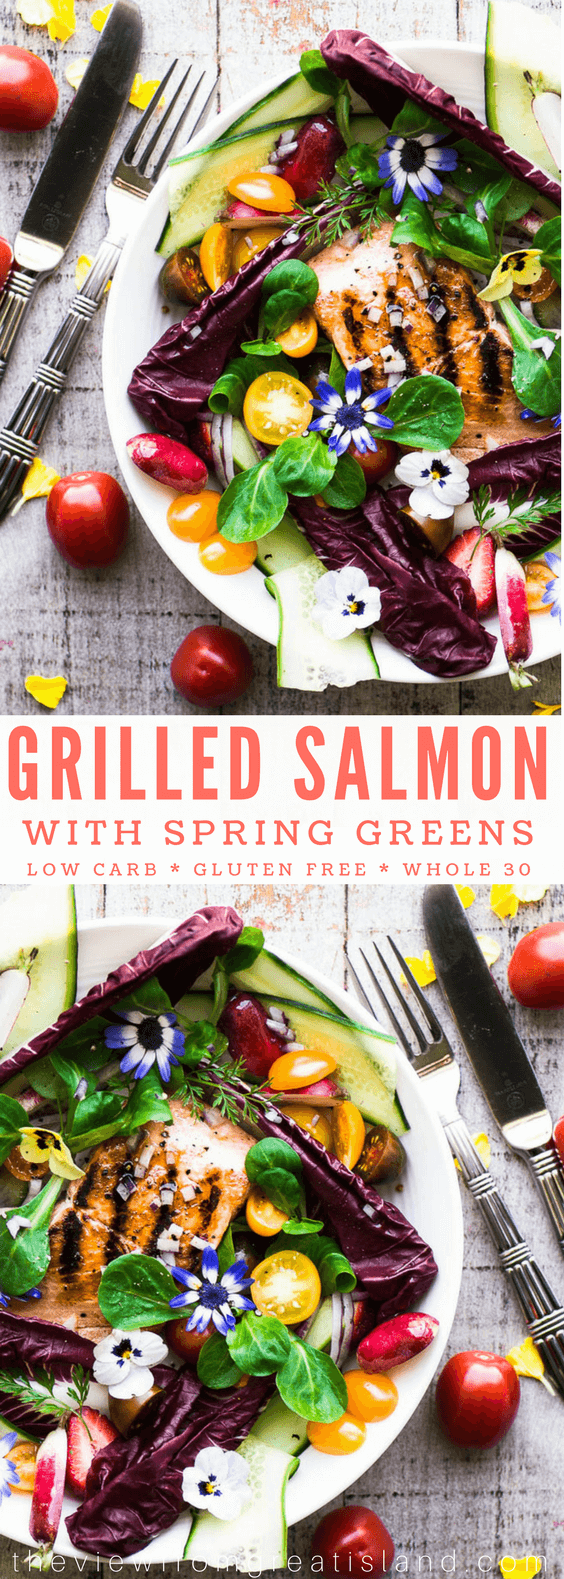 This Grilled Salmon Salad with spring greens and edible flowers is one of my favorite ways to eat fresh grilled fish like salmon, ahi, or halibut. This meal is low carb, gluten free, paleo, whole 30, and really satisfying. #salmon #grilledfish #fish #seafood #salmonsalad #springsalad #mothersday #brunch #lunch #glutenfree #whole30 #weightwatchers #lowcalorie #lowfat #lowcarb #mediterraneandiet #maincoursesalad #edibleflowers